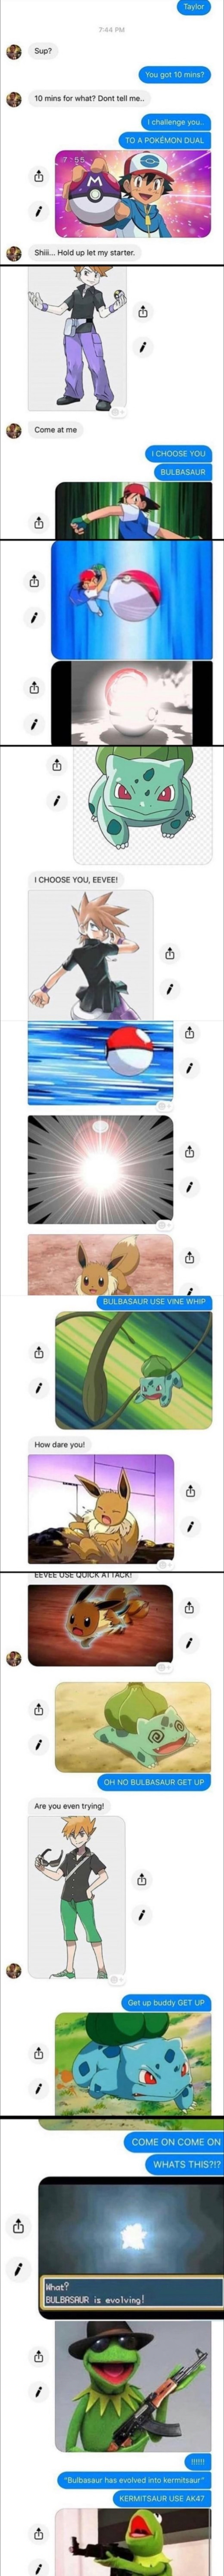 truculent disastrous Moose. .. >eevee using quick attack >after bulbasaur's vine whip